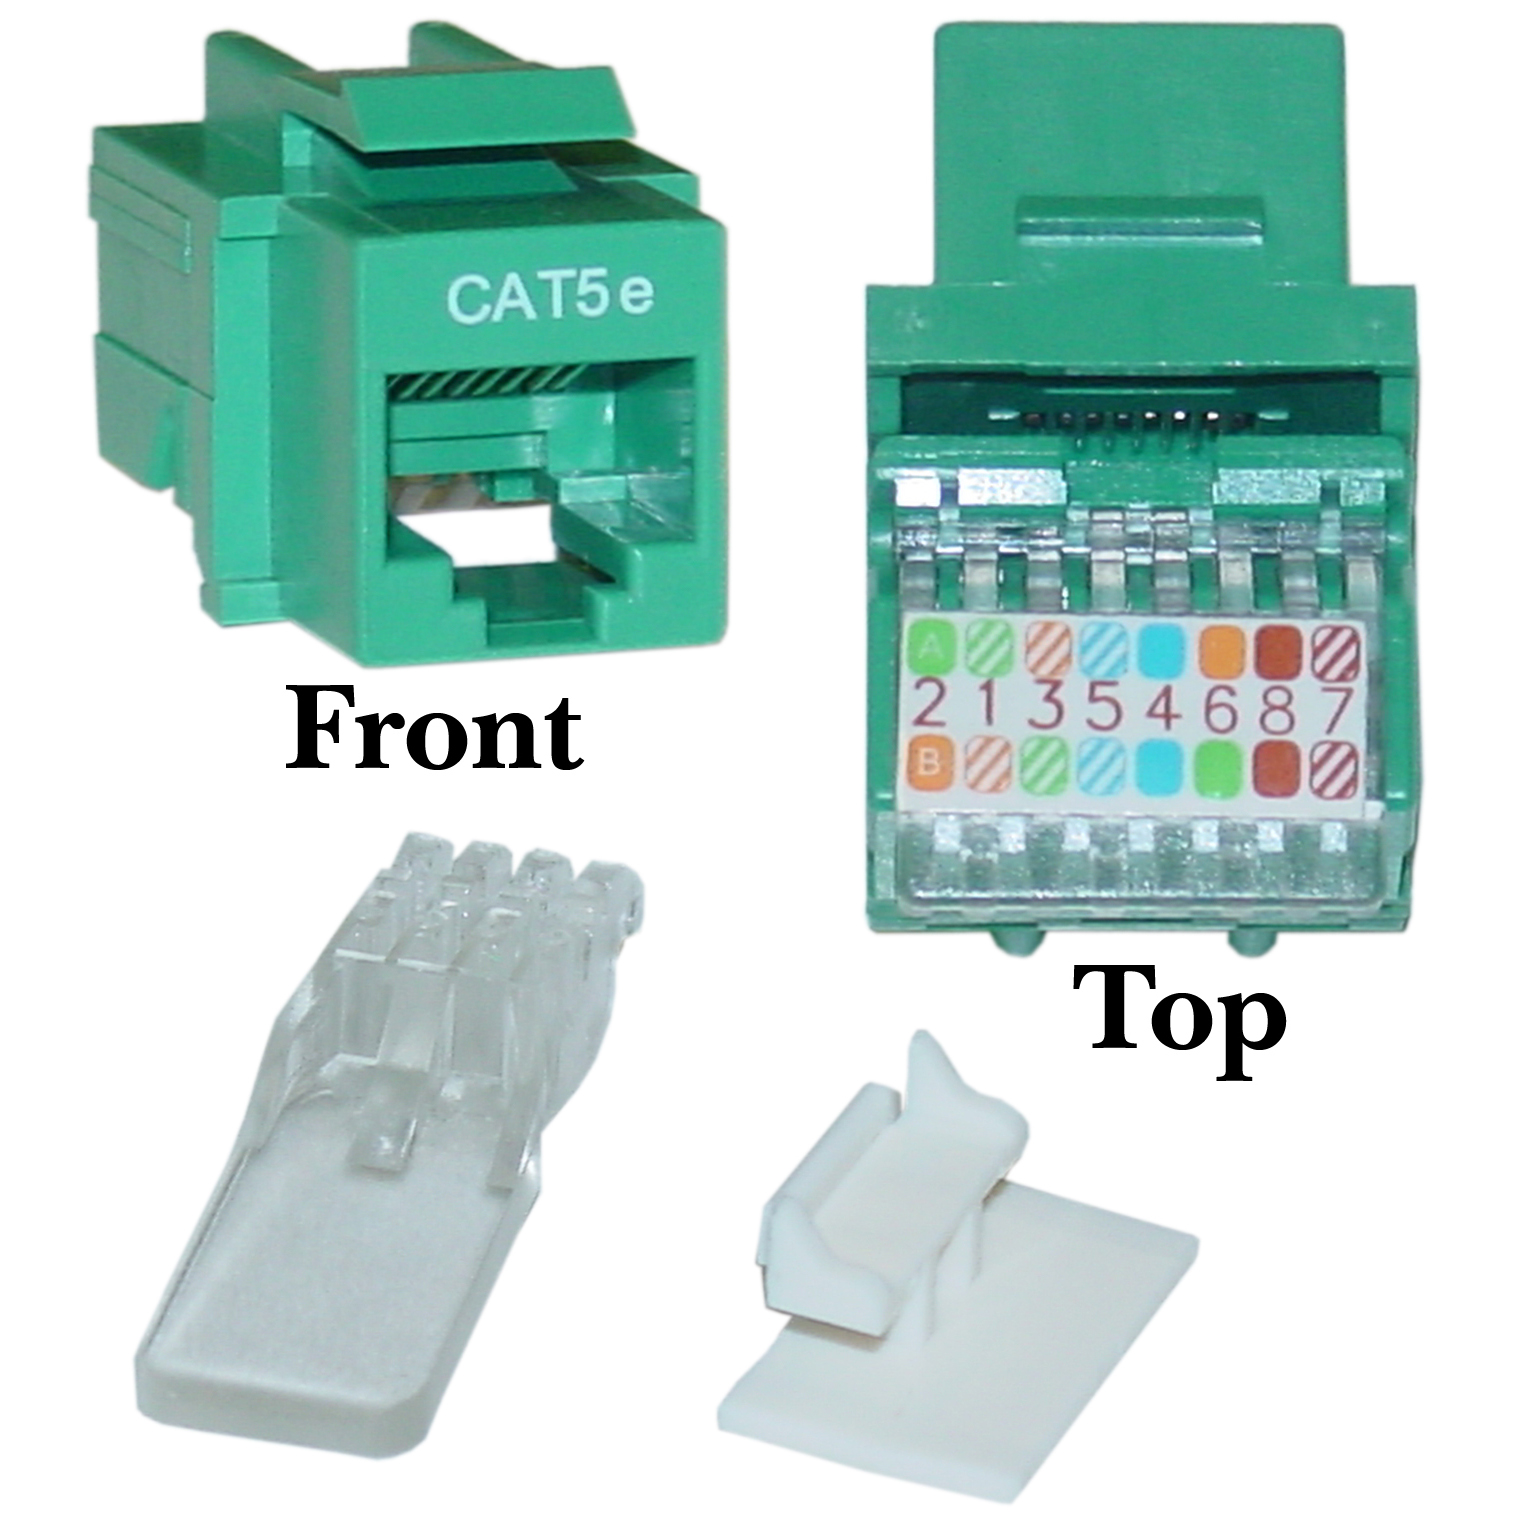 311 120gr green cat5e rj45 keystone jack toolless cablewholesale cat 5e jack diagram at bakdesigns.co